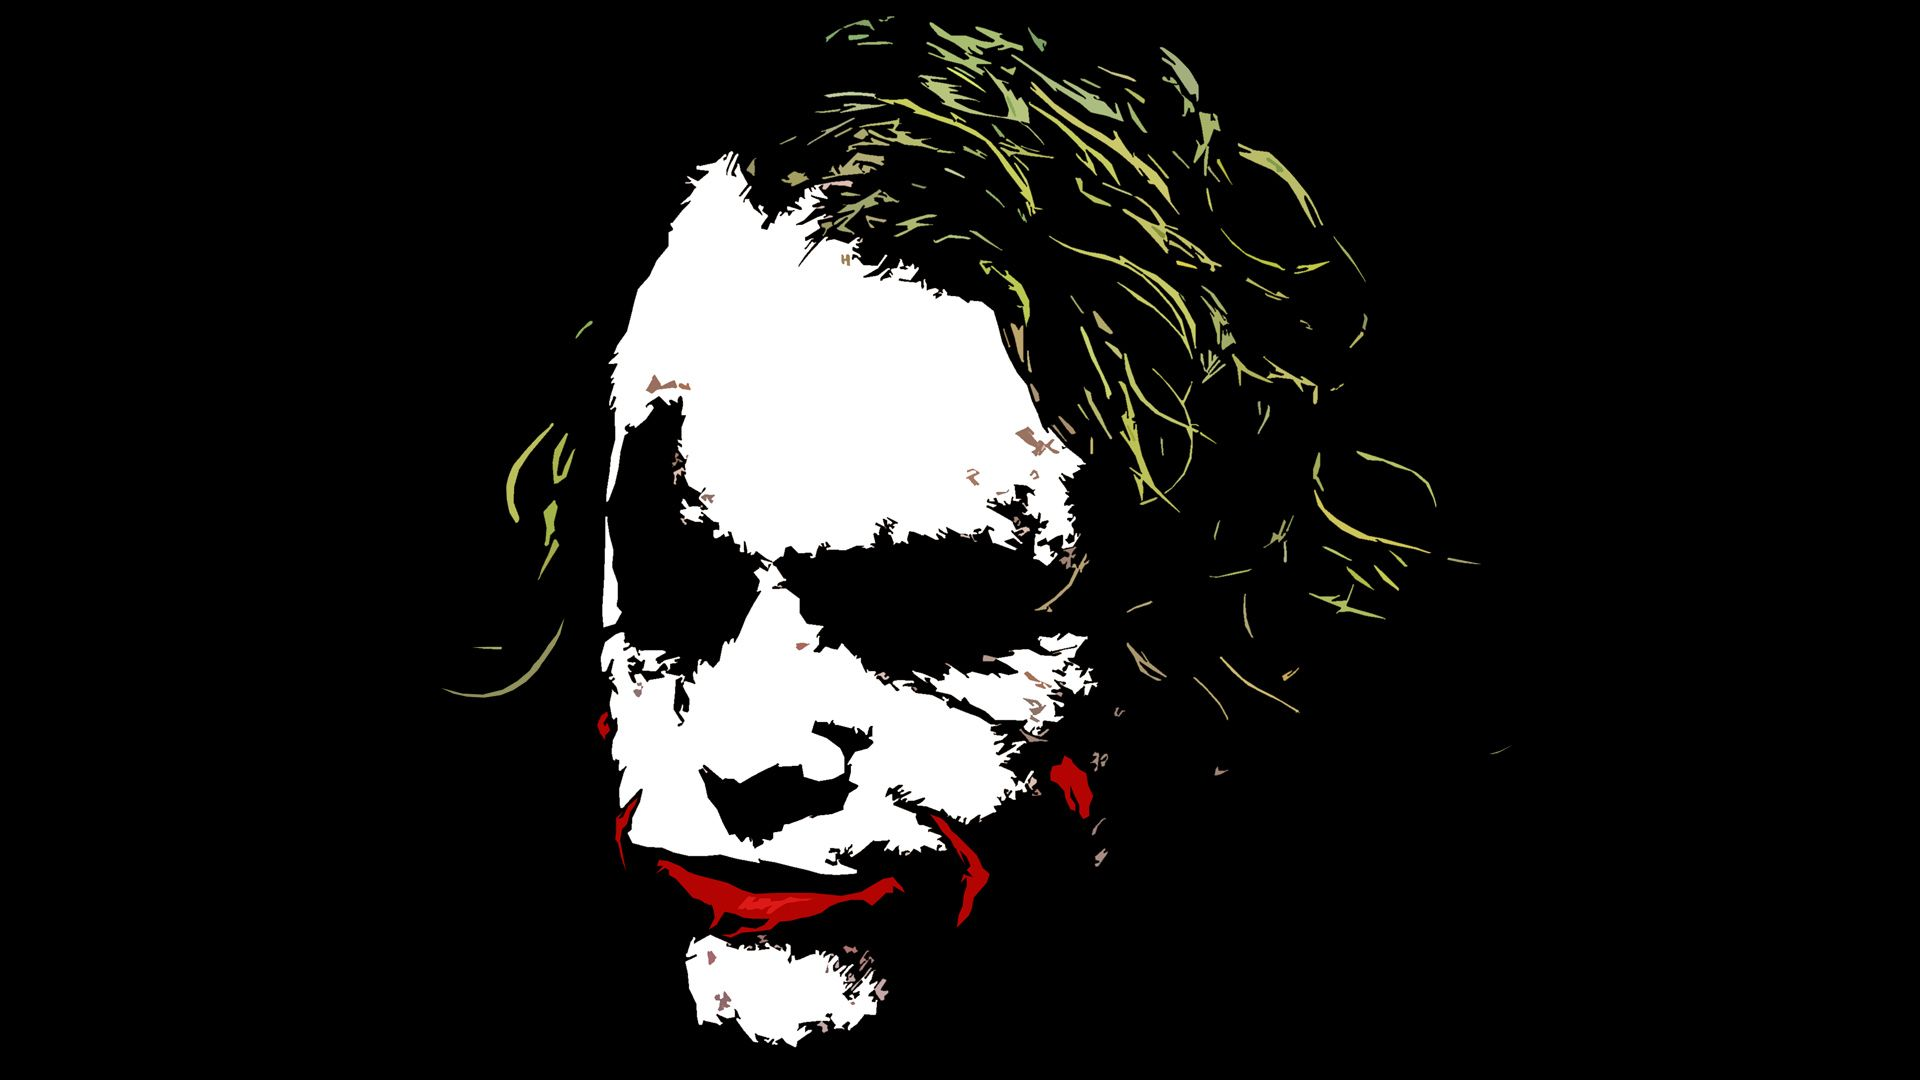 The Joker Hd Wallpaper 1920x1080 Id 34241 Joker Wallpapers Joker Hd Wallpaper Joker Images